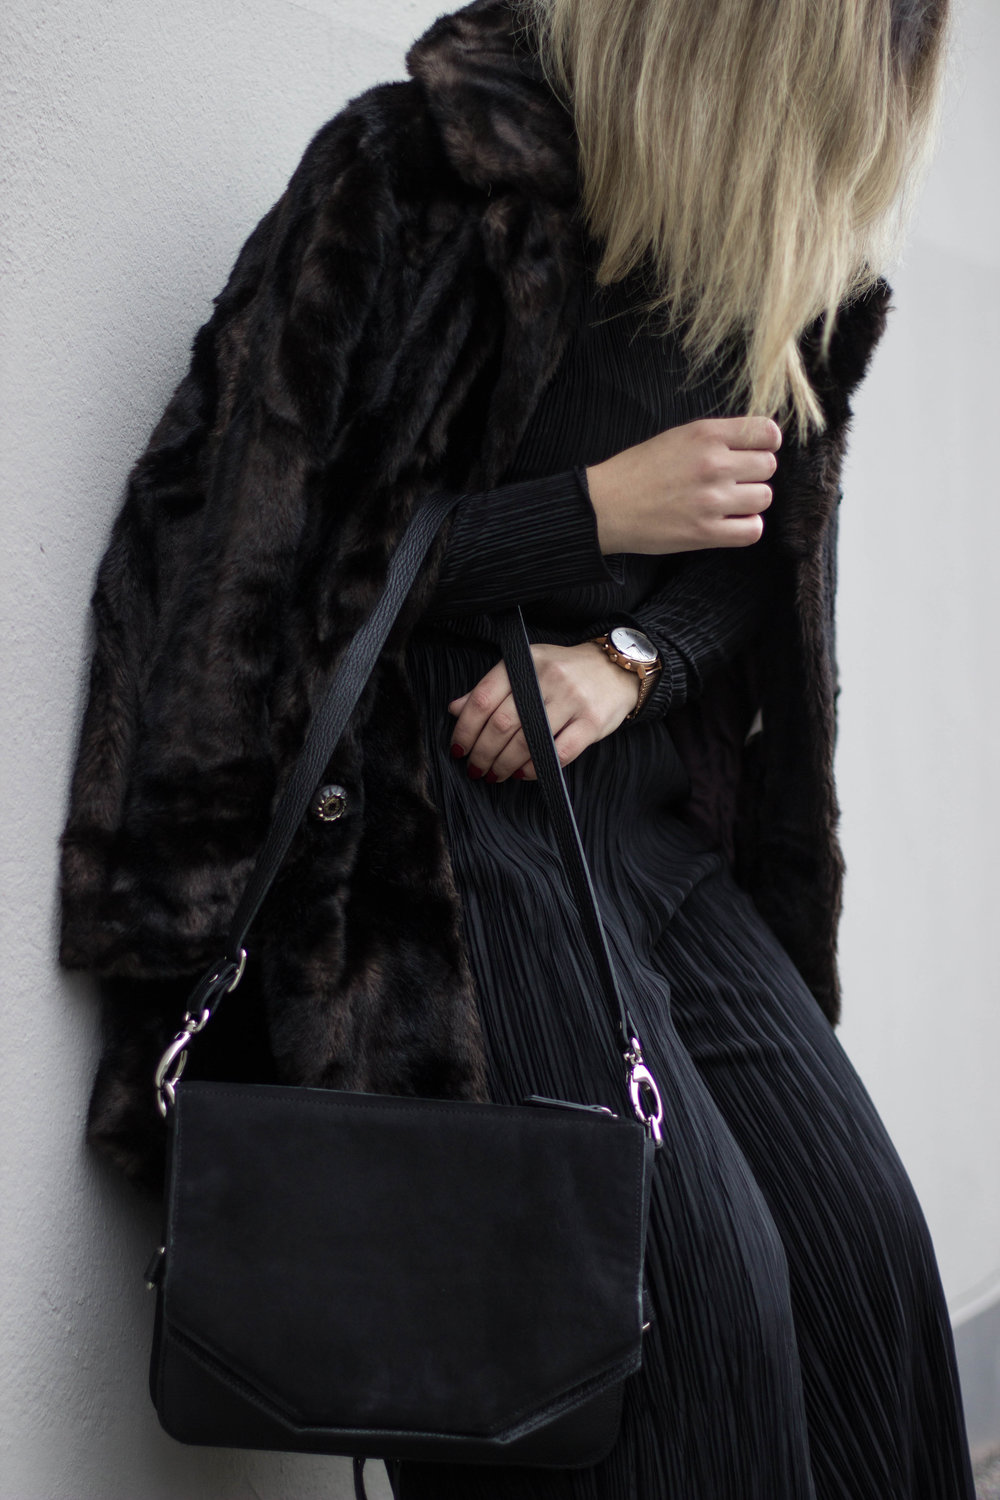 THE PARTY CLUTCH FOR THE WEEKENDS - WEARING// COAT VINTAGE / TOP GINA TRICOT / PANTS H&M / BOOTS VINTAGE / WATCH KRONABY / BAG BUKVY